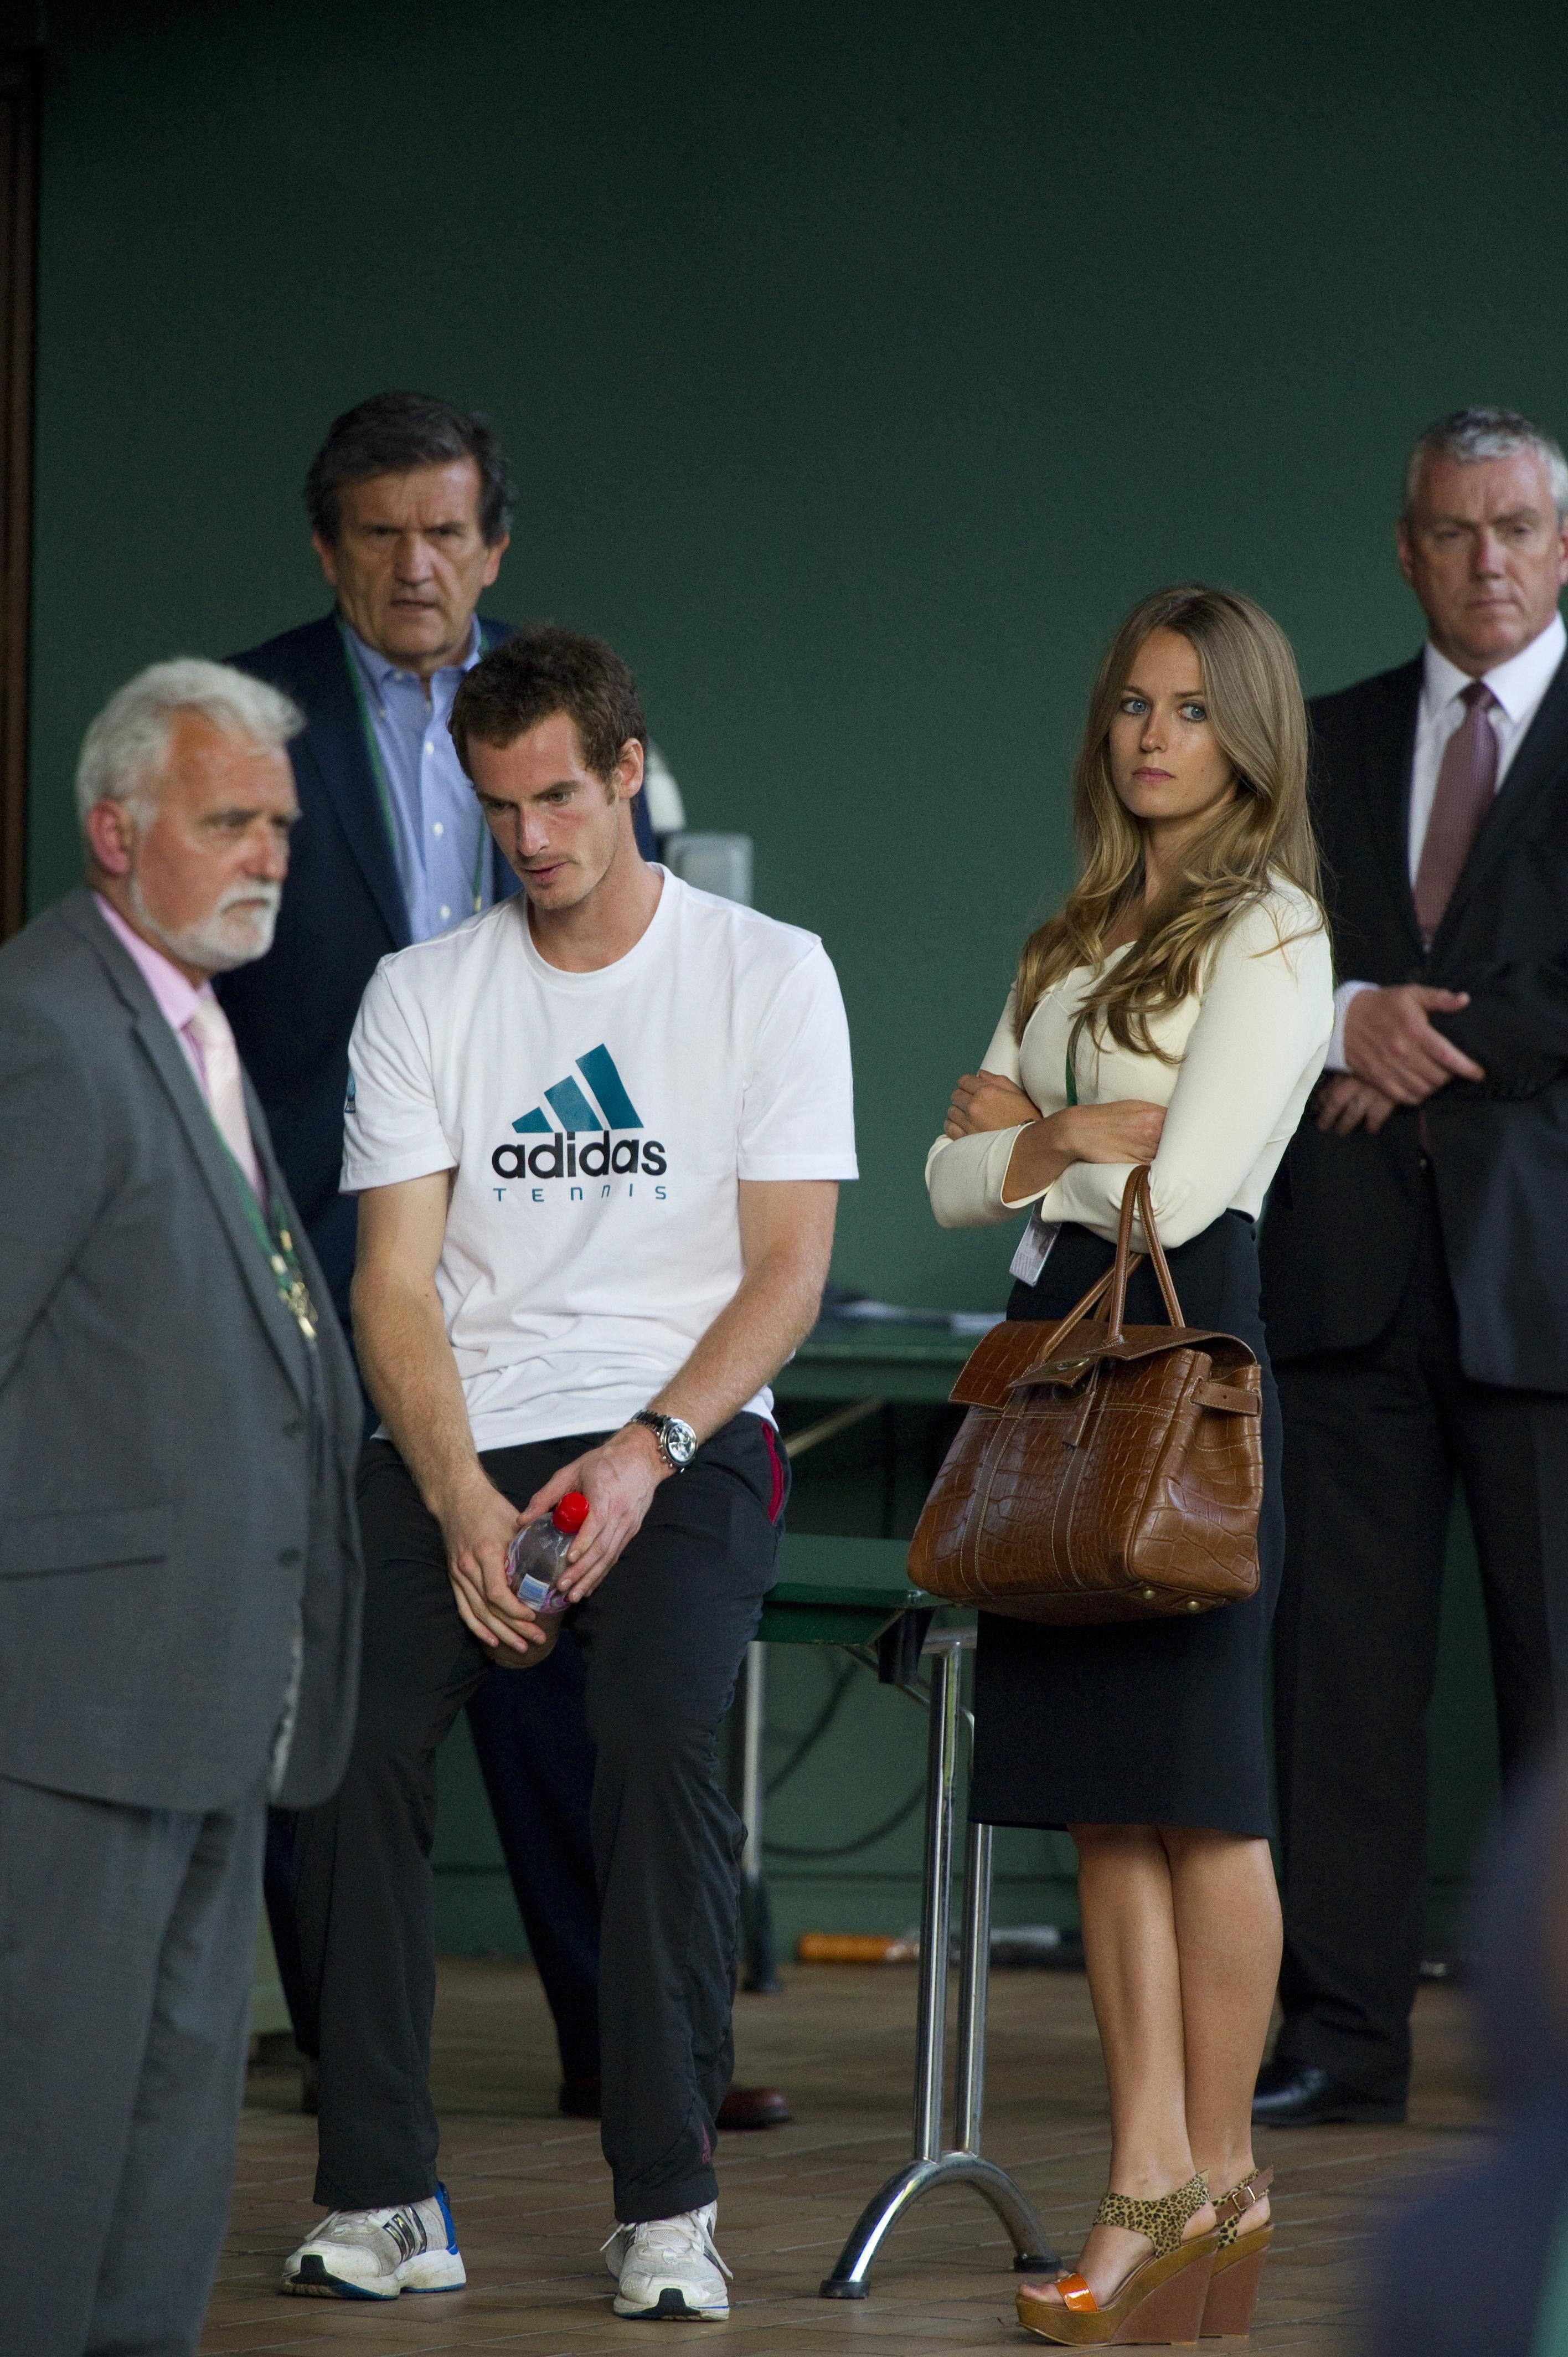 Dejected Murray and Sears after losing the 2012 Wimbledon Final.